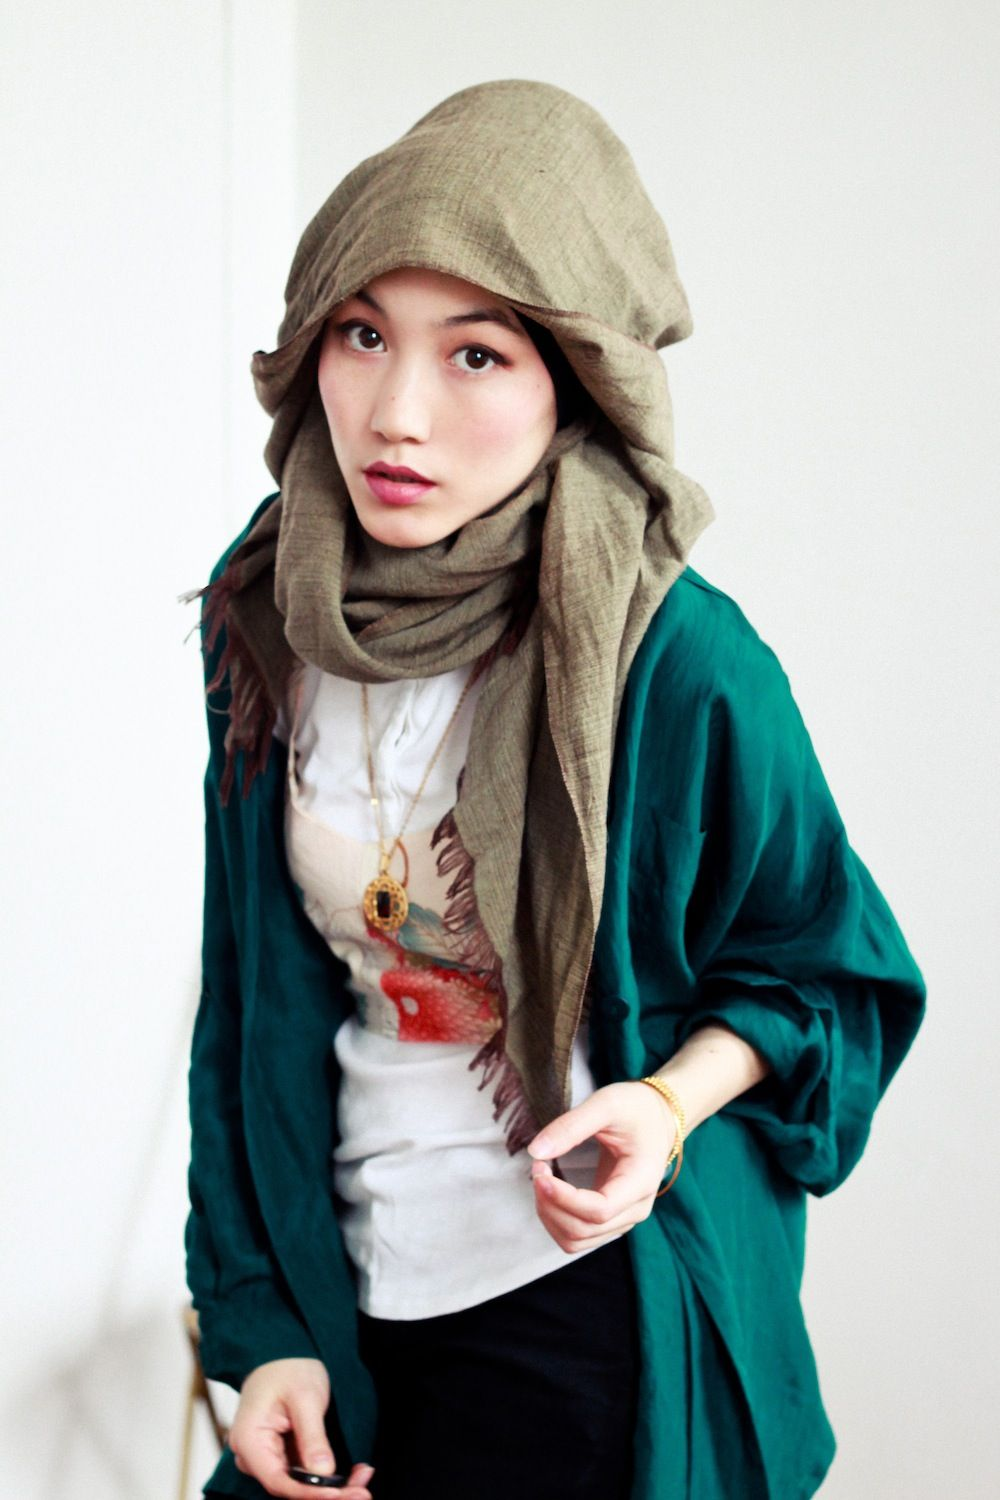 Teal HNTAJ Hijab Modesty Pinterest Vintage The Ojays And